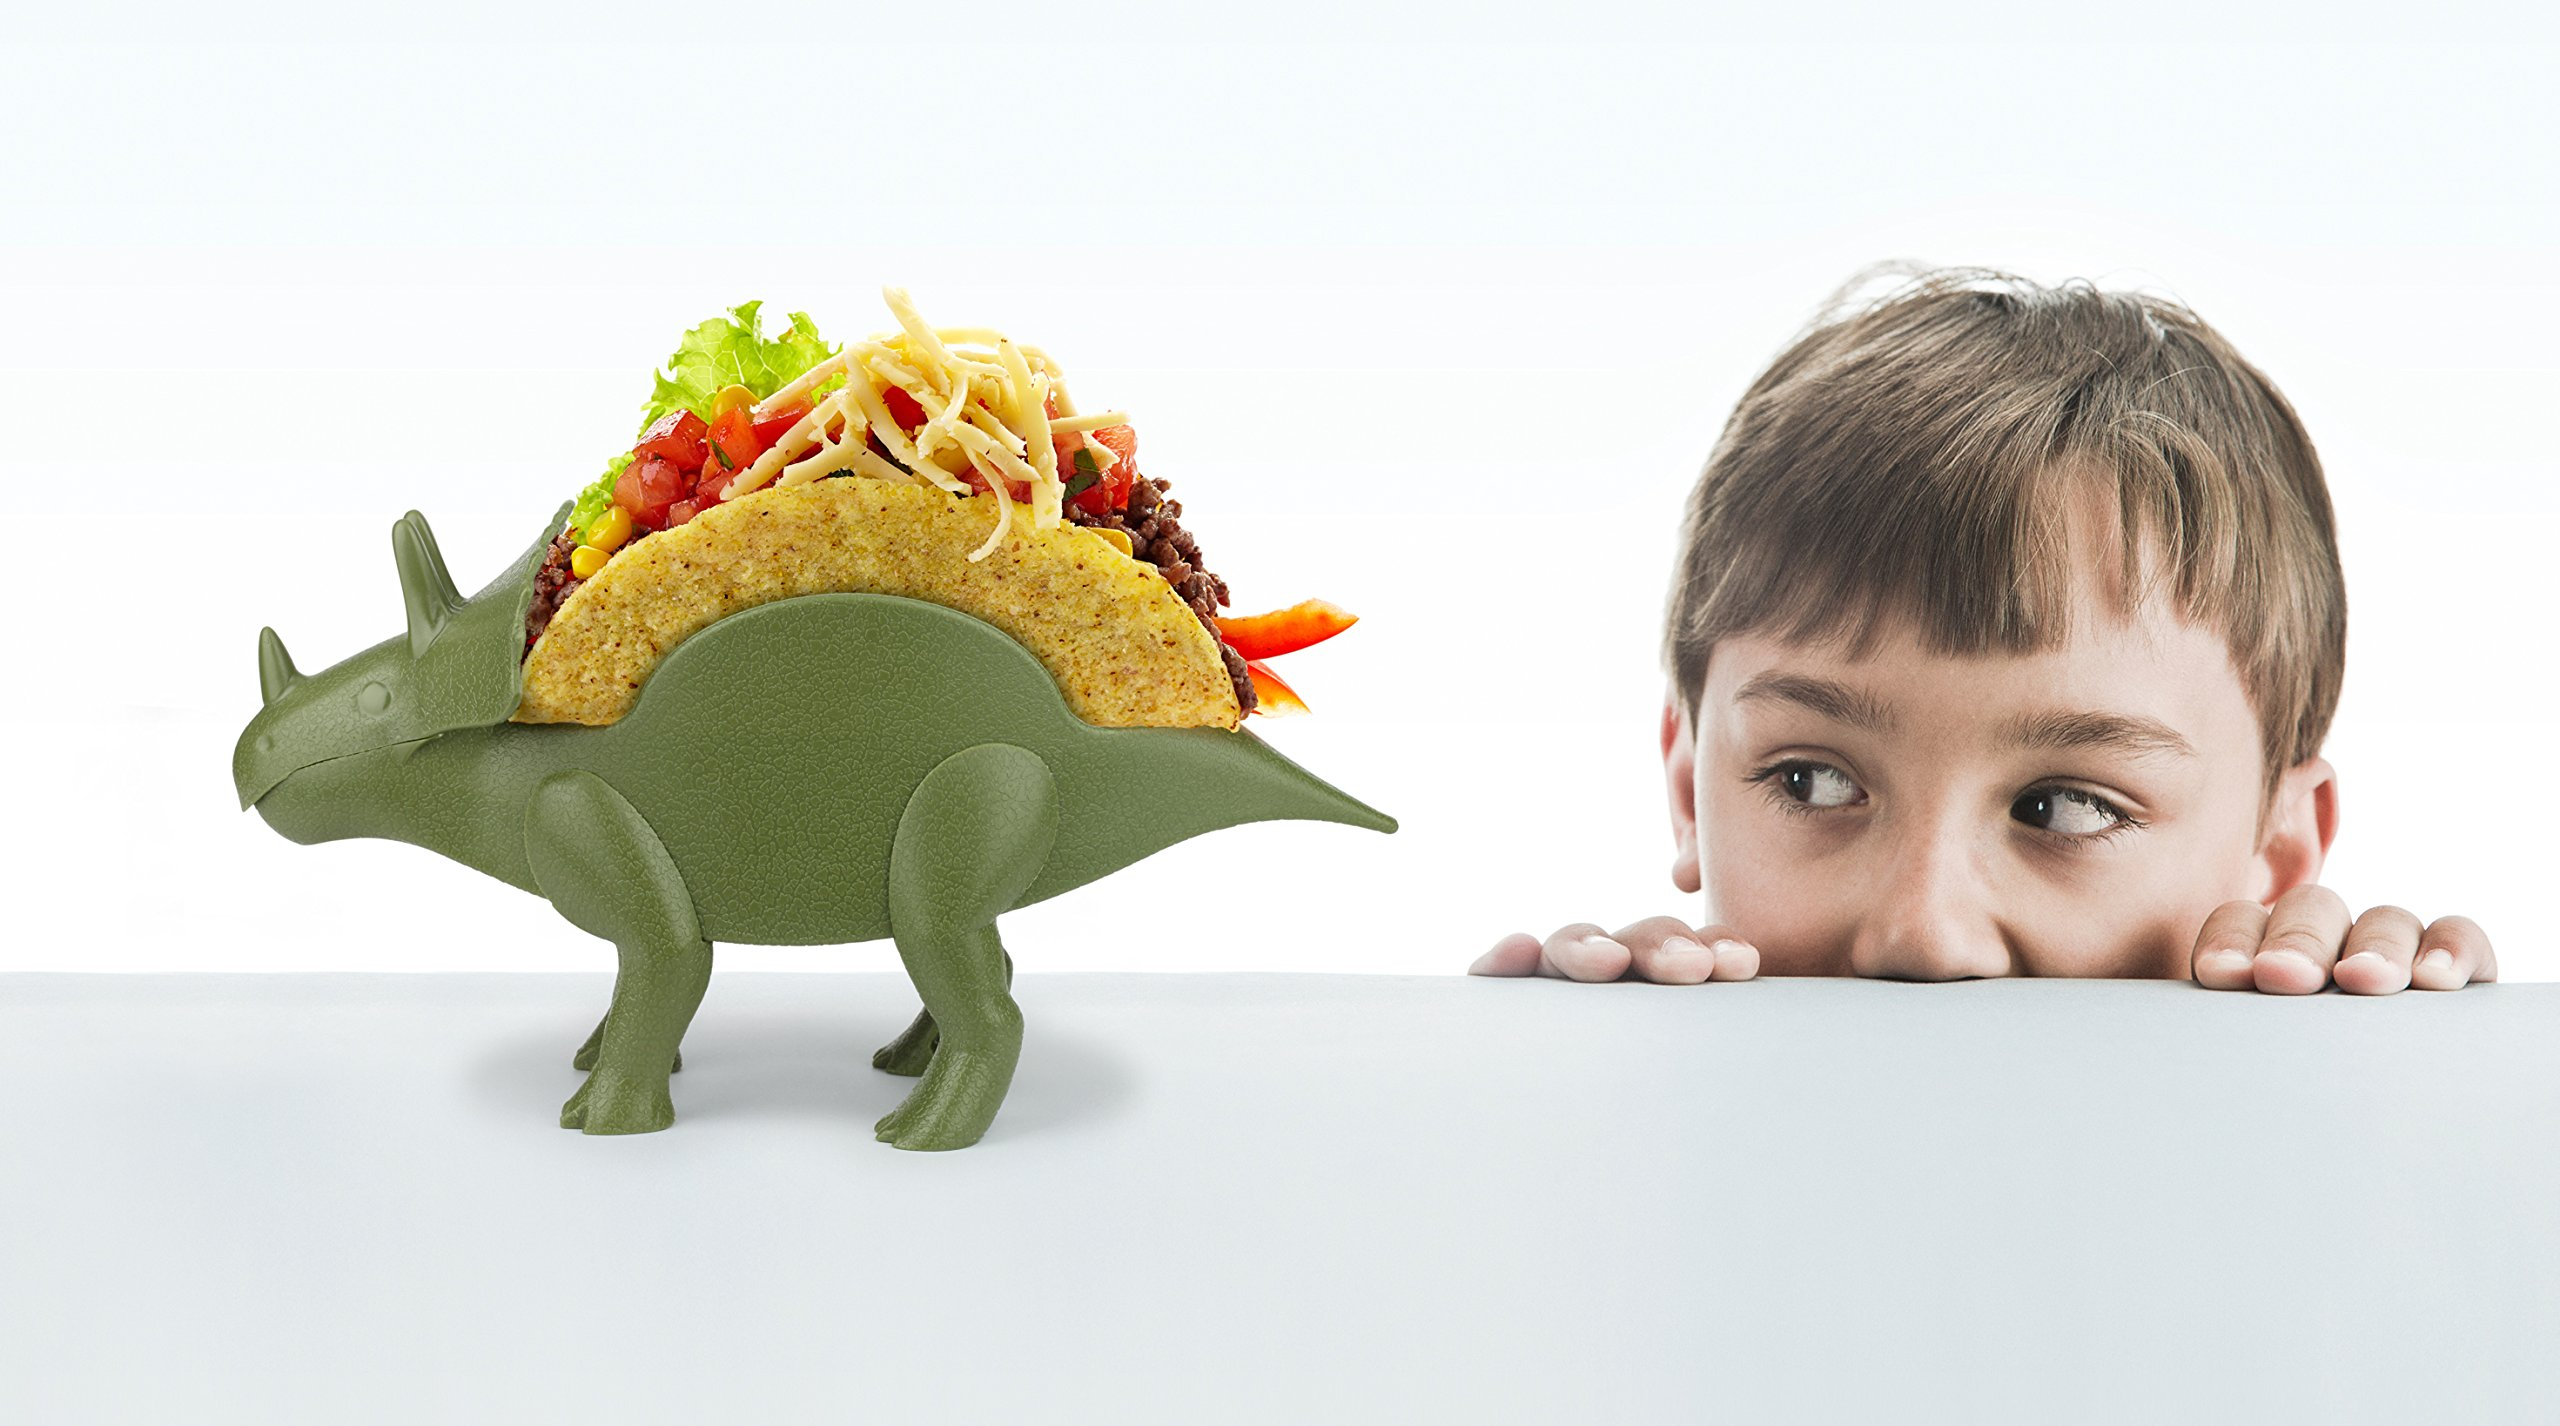 KidsFunwares TriceraTACO Taco Holder - The Ultimate Prehistoric Taco Stand for Jurassic Taco Tuesdays and Dinosaur Parties - Holds 2 Tacos - The Perfect Gift for Kids and Kidults that Love Dinosaurs by KidsFunwares (Image #15)